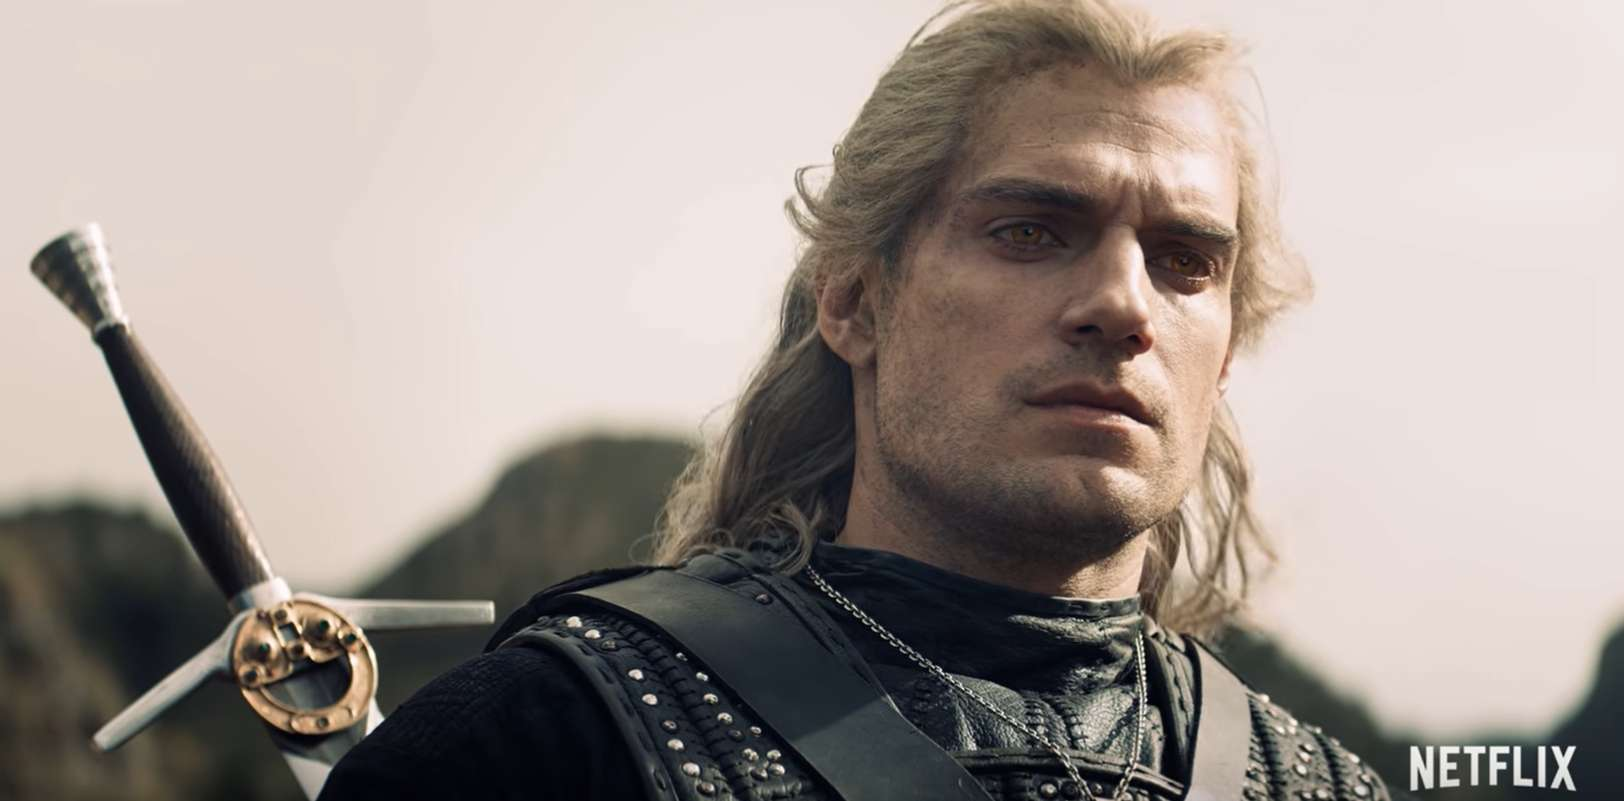 The Witcher Netflix Series Has Surpassed The Mandalorian As The Most Popular And In-Demand Streaming Show On Earth